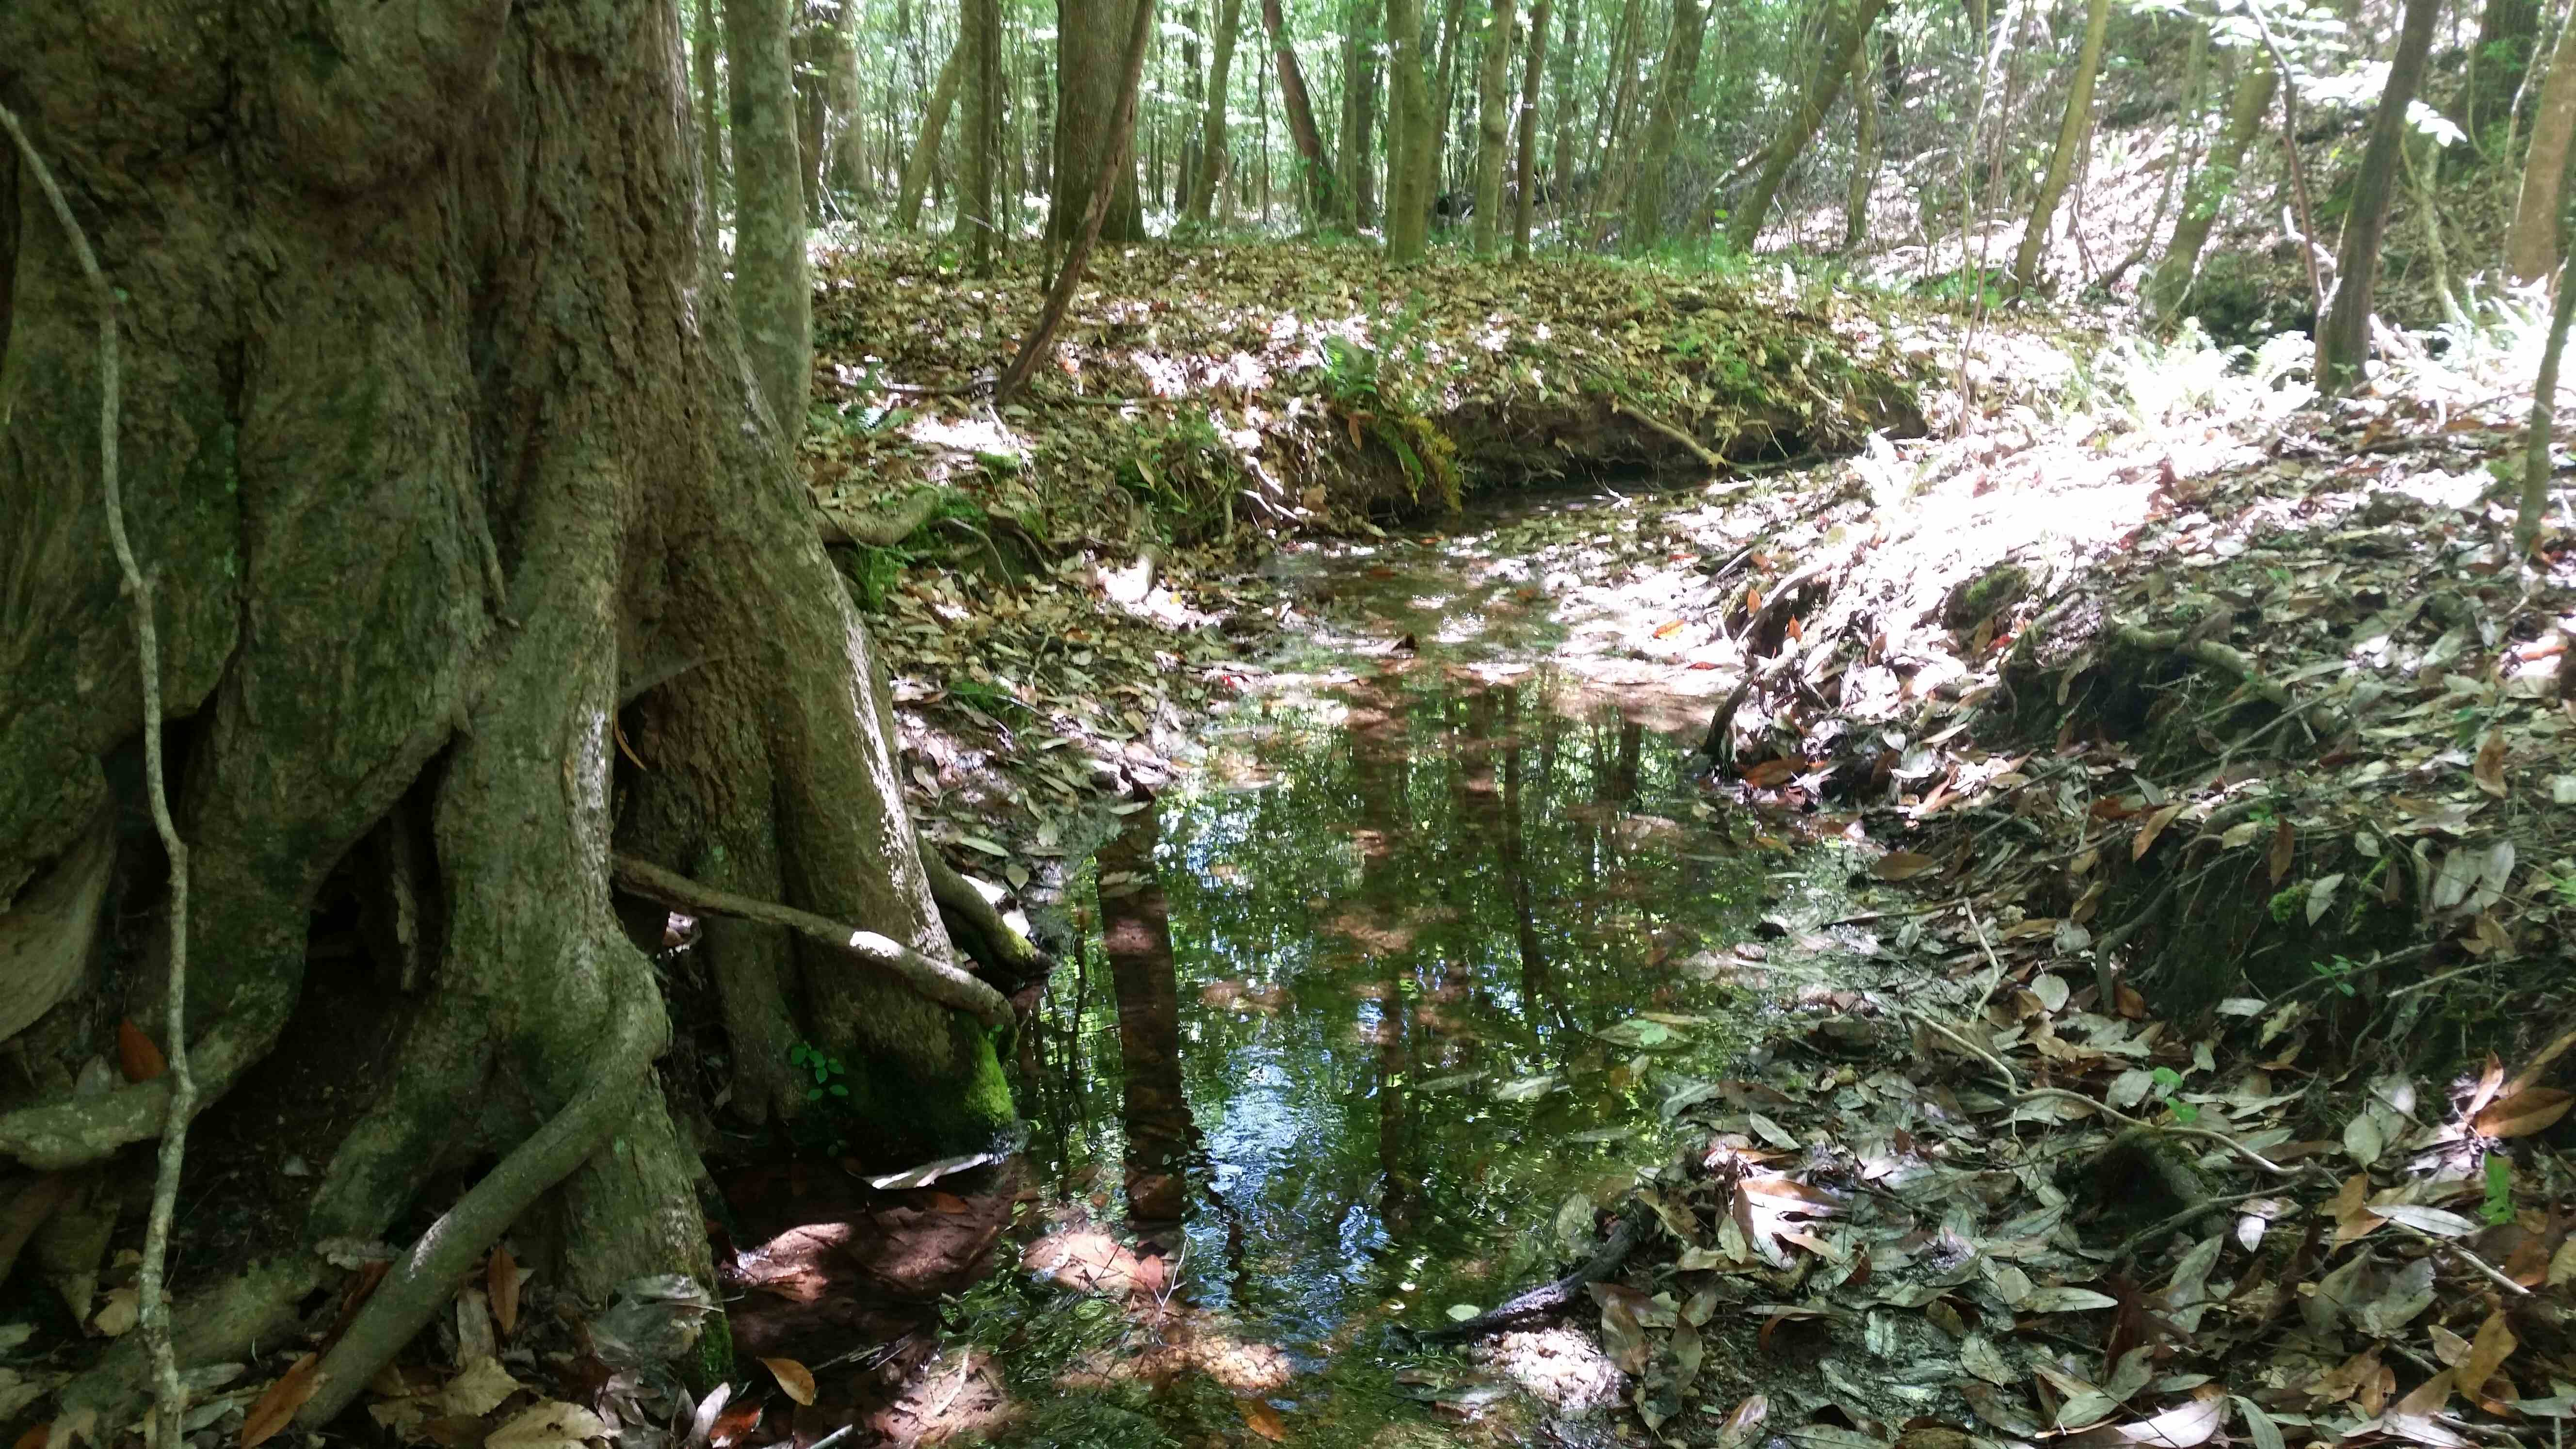 A view of one of the small creeks on the property.